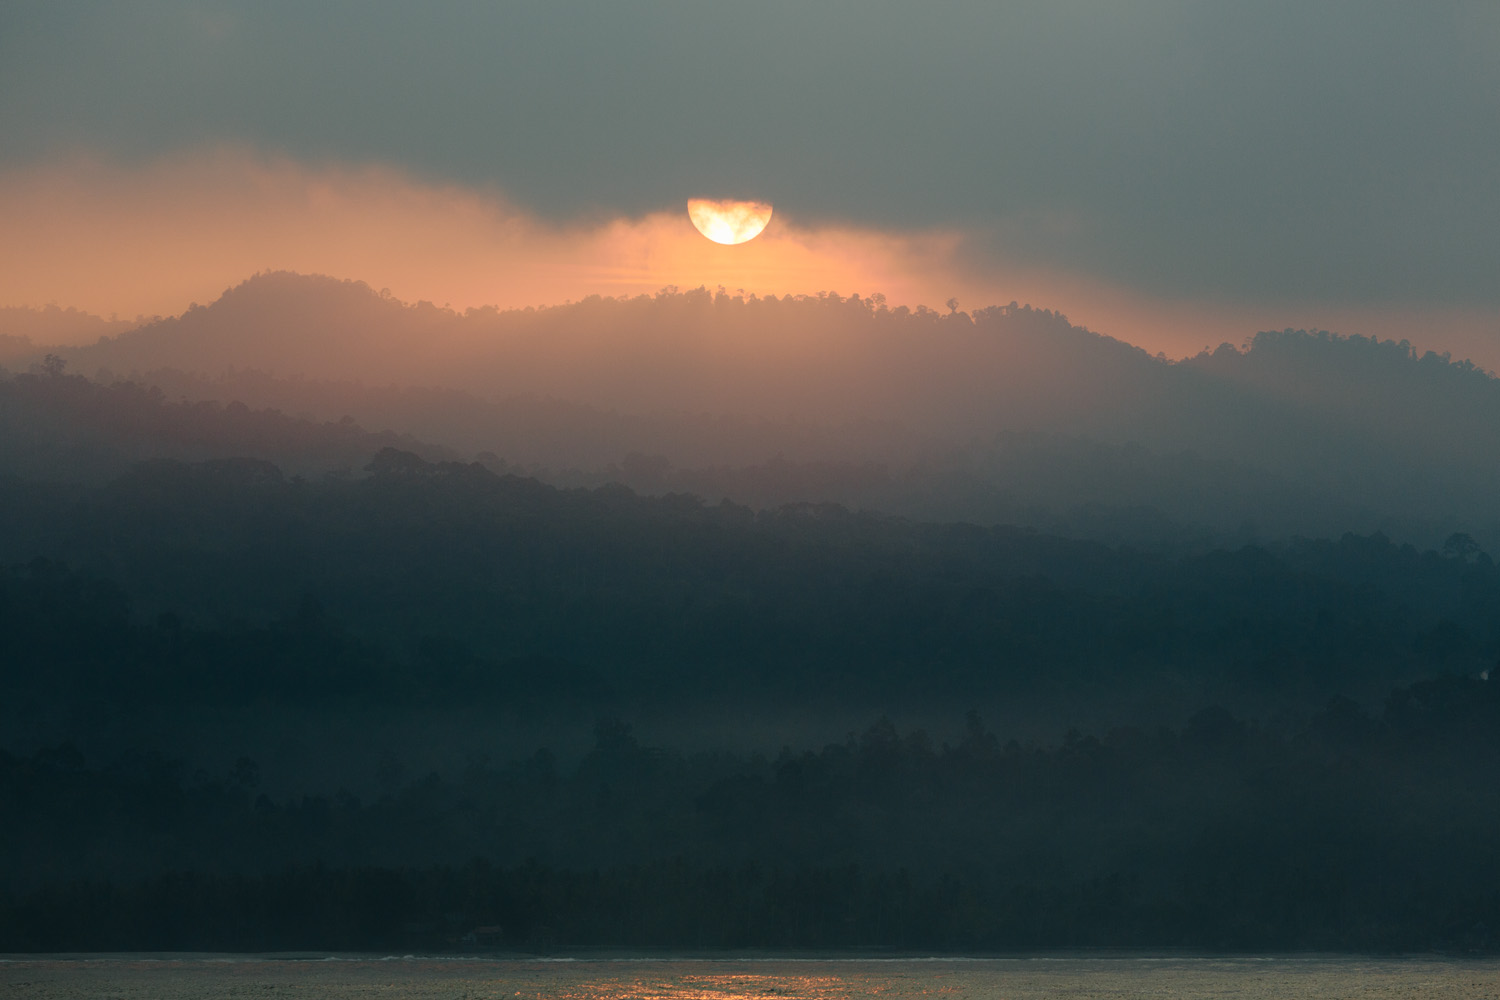 Sumatran Sunrise, Travel Photography, Landscape Photography